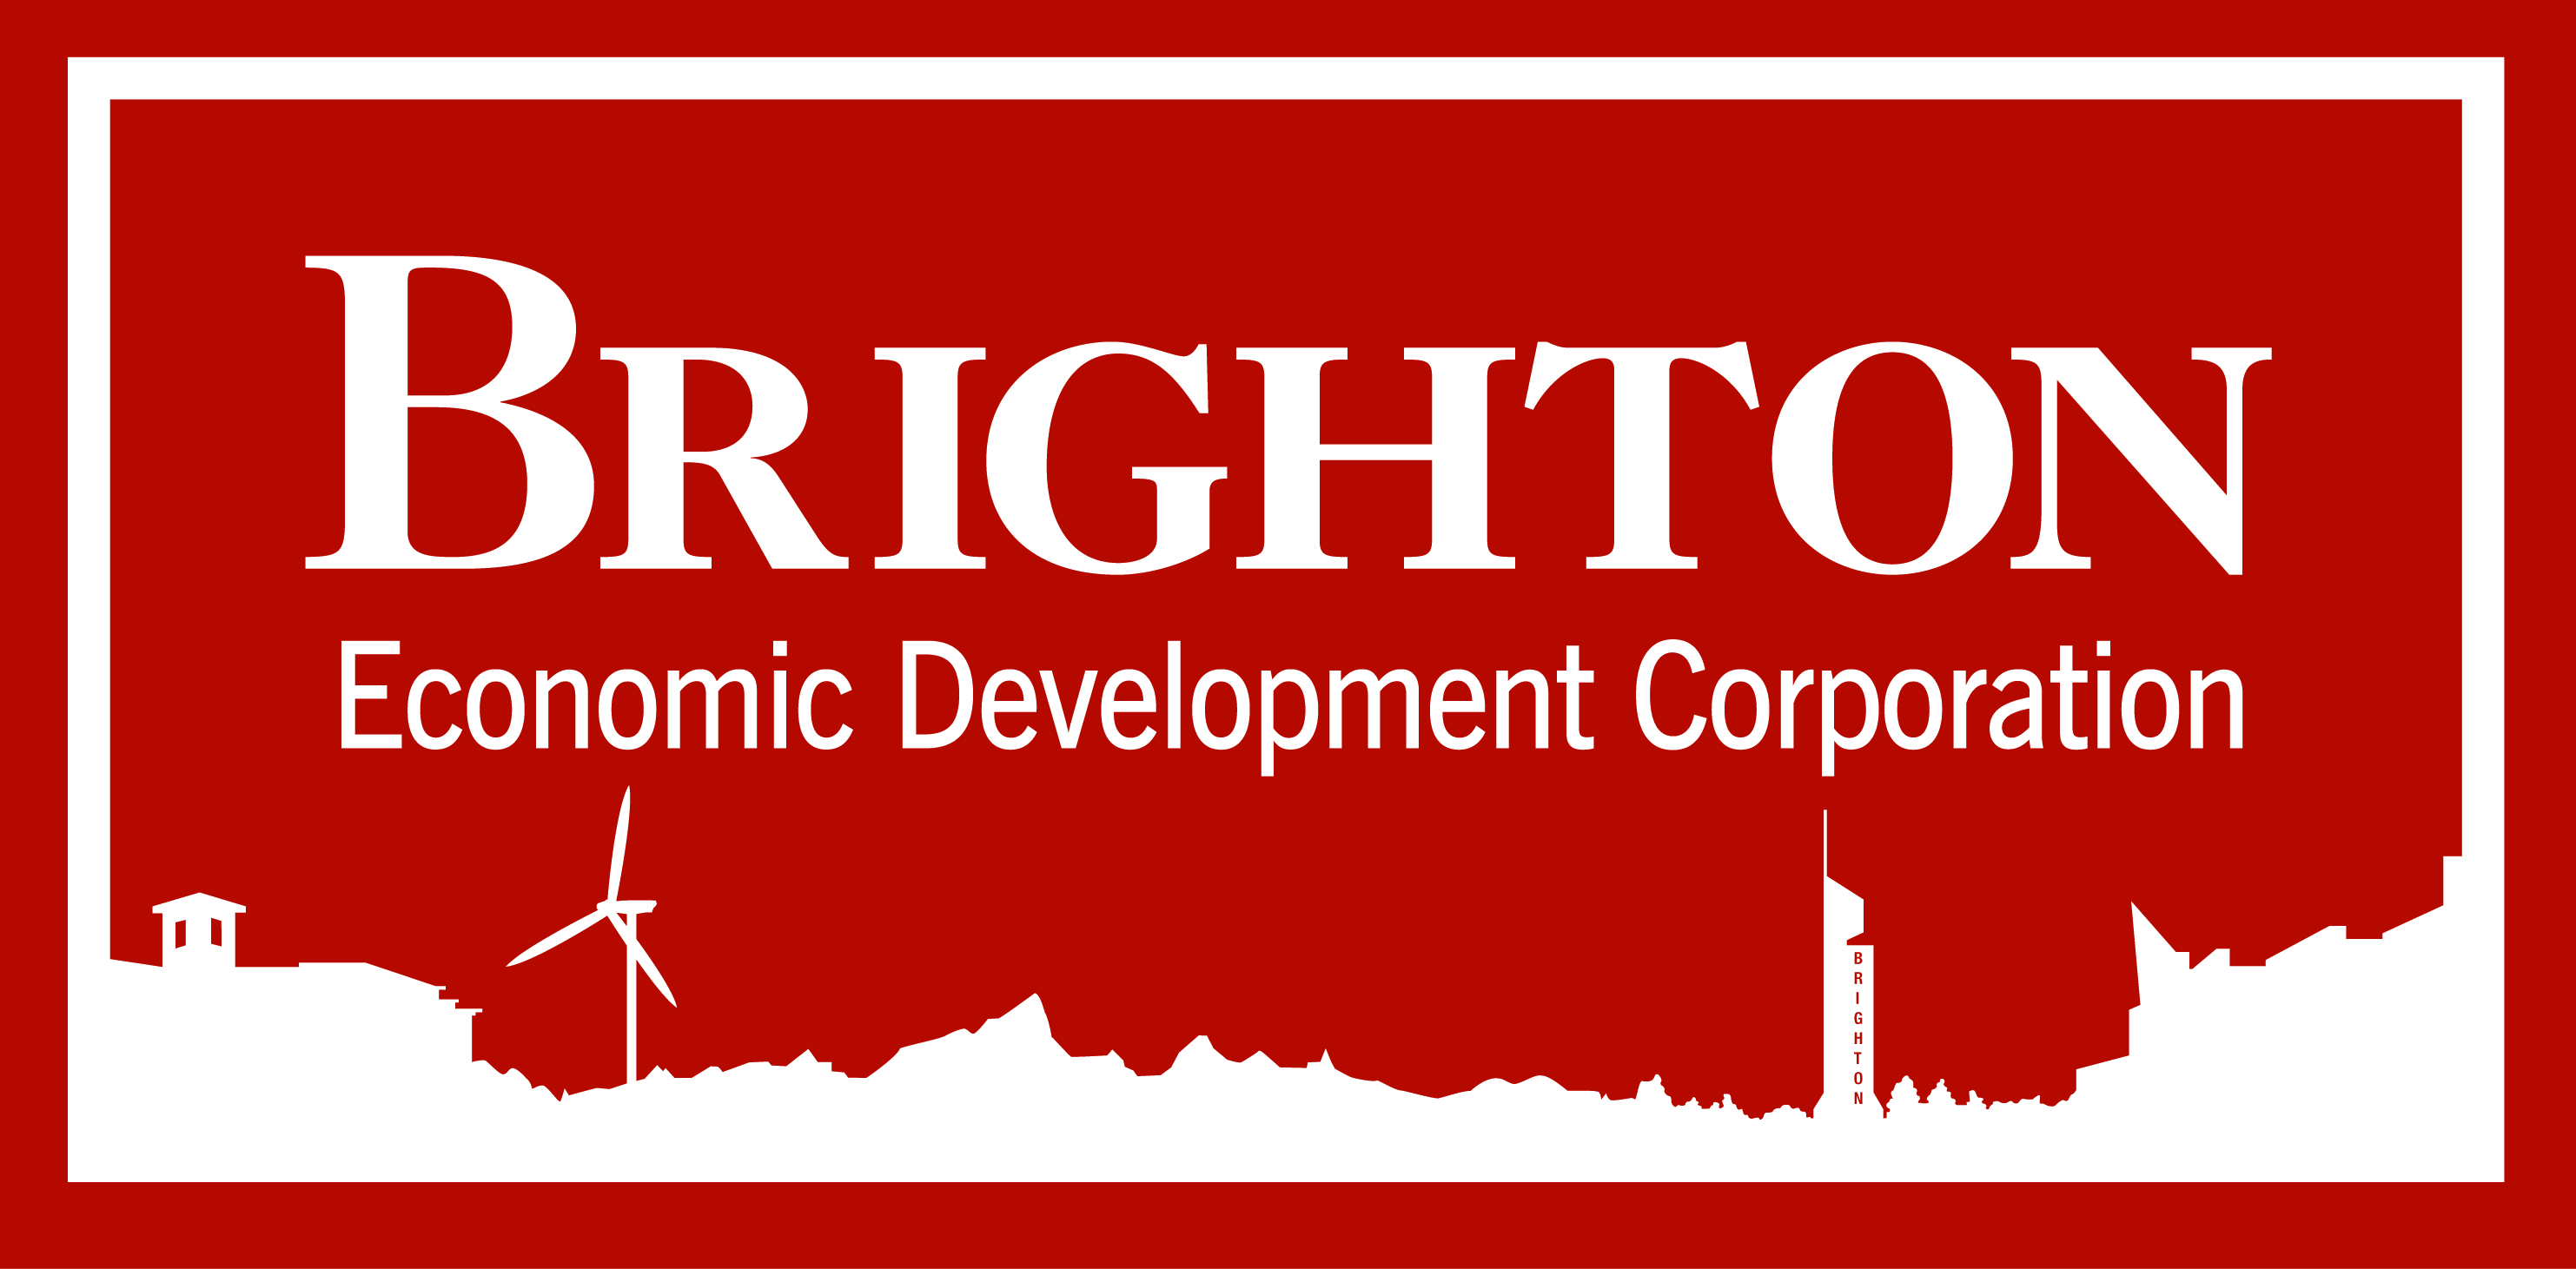 Brighton Economic Development